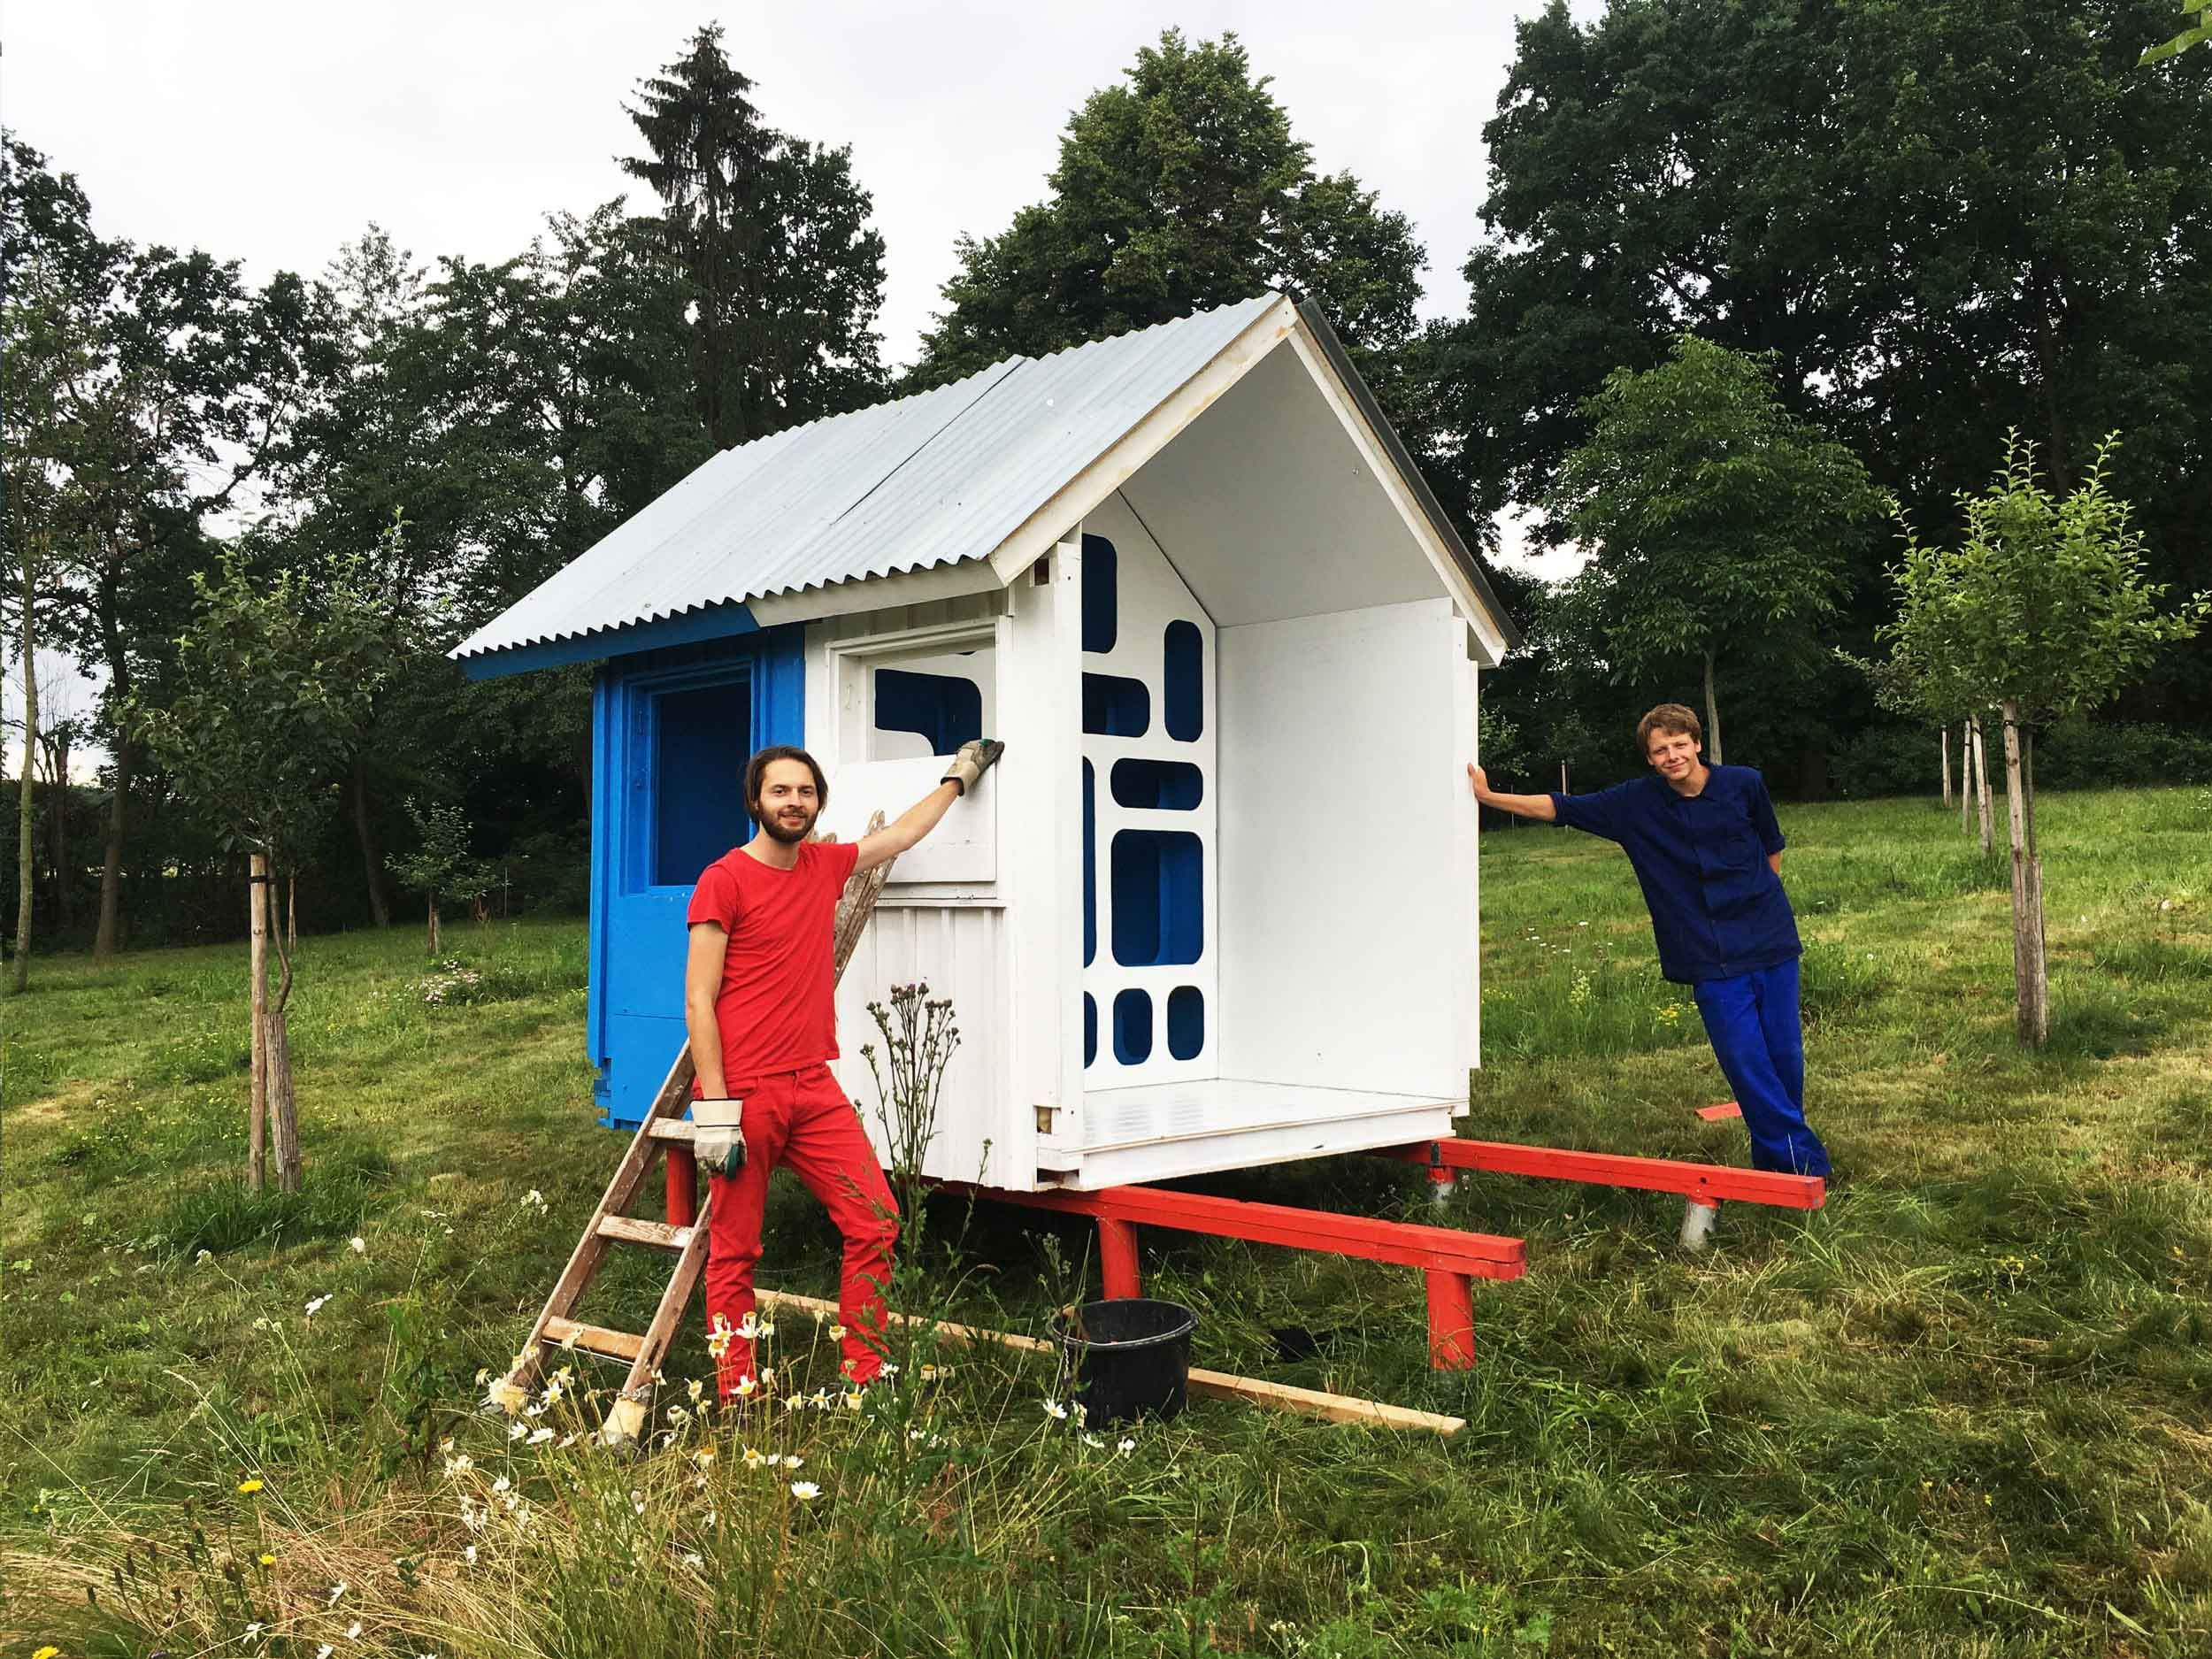 Czech Architect Designs Tiny Flat Pack House Costing Just £1,000